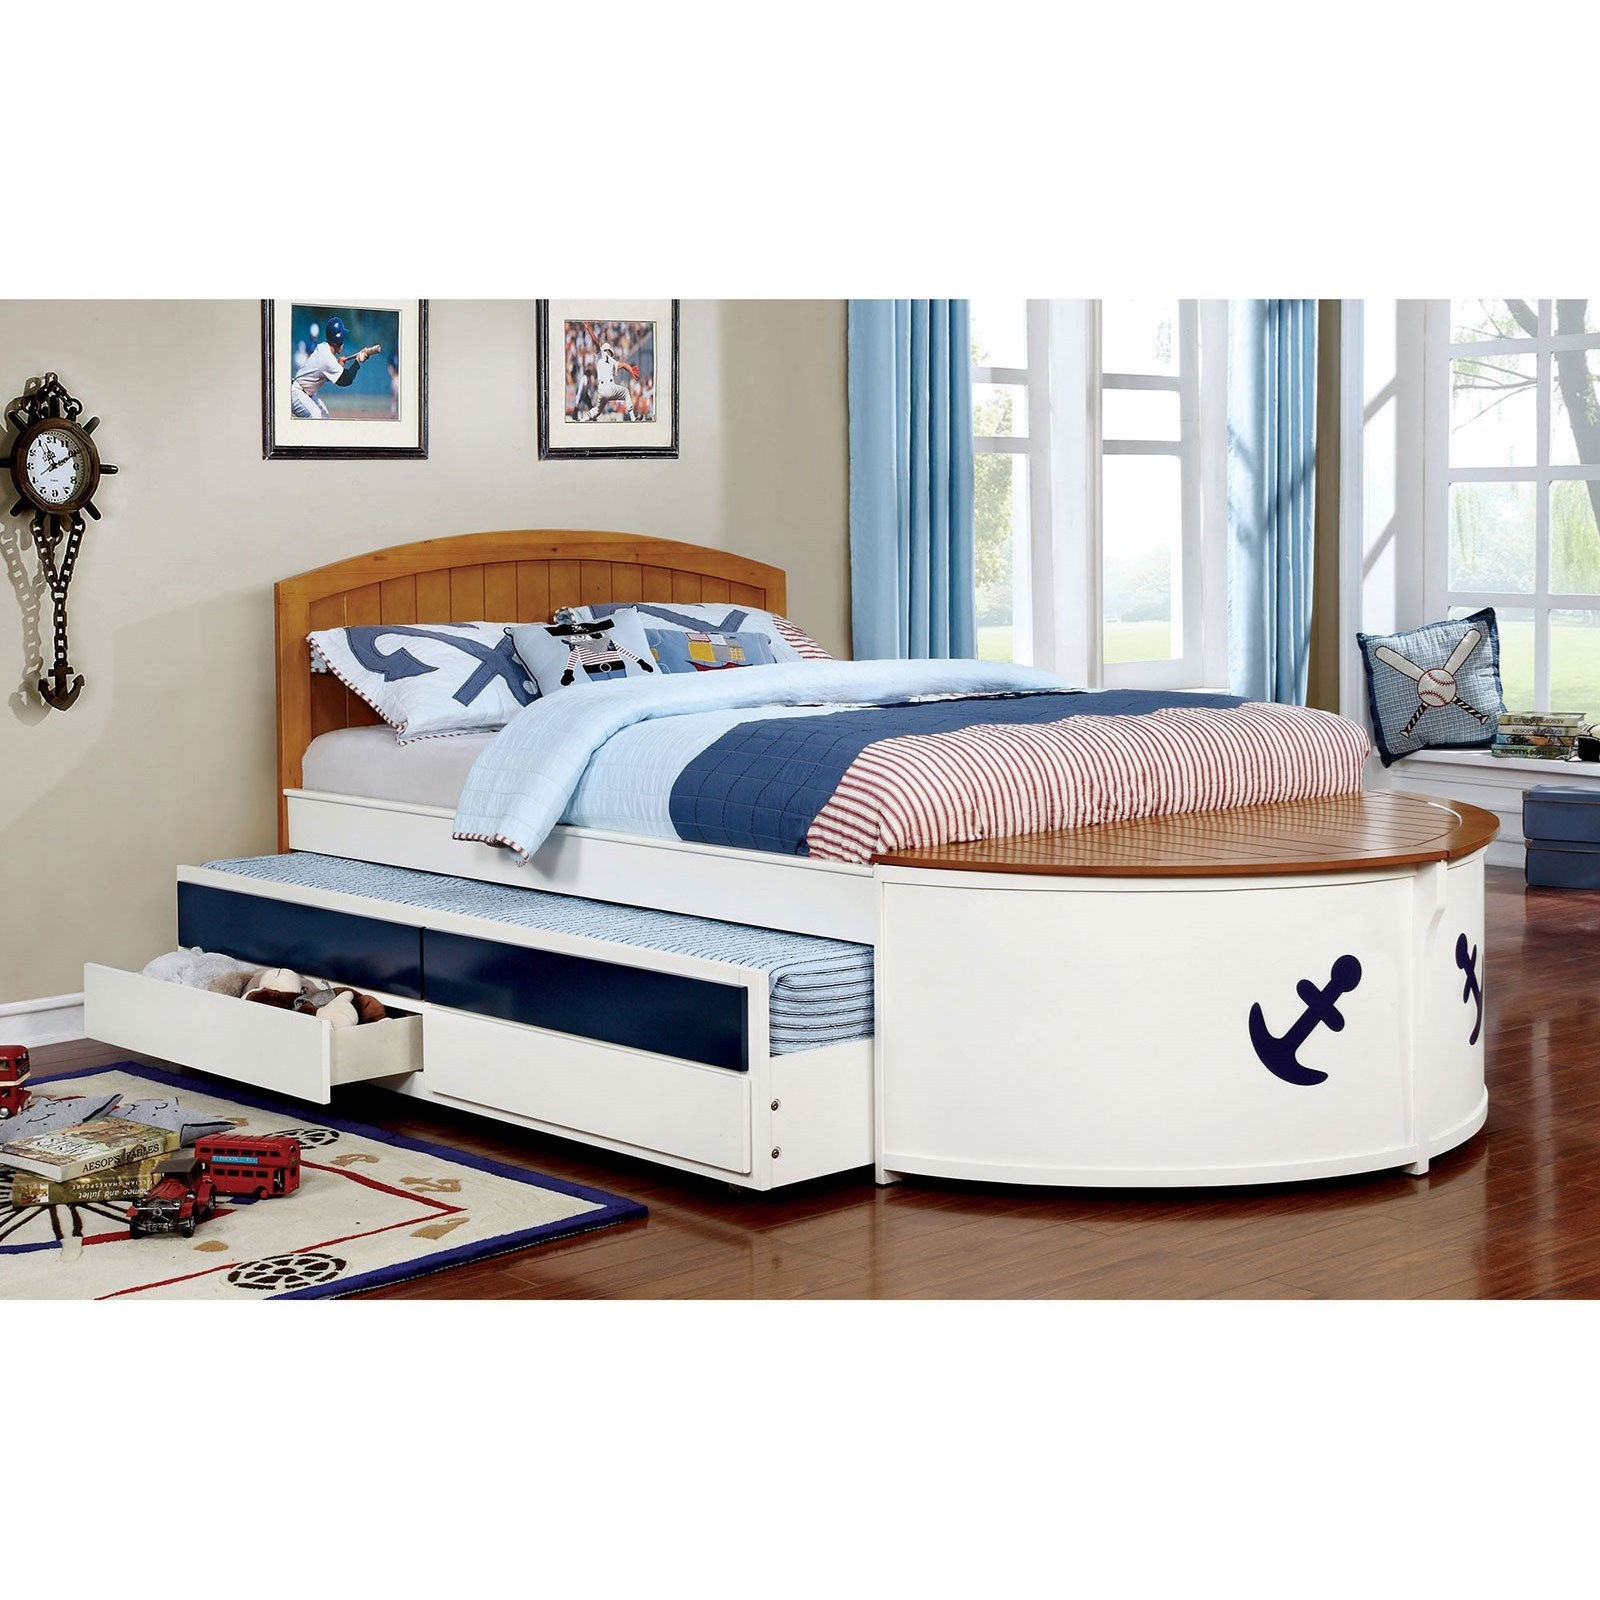 Furniture Of America Voyager Nautical Youth Bedroom Full Size Bed With Trundle And Storage Drawers Dream Home Interiors Captain S Beds